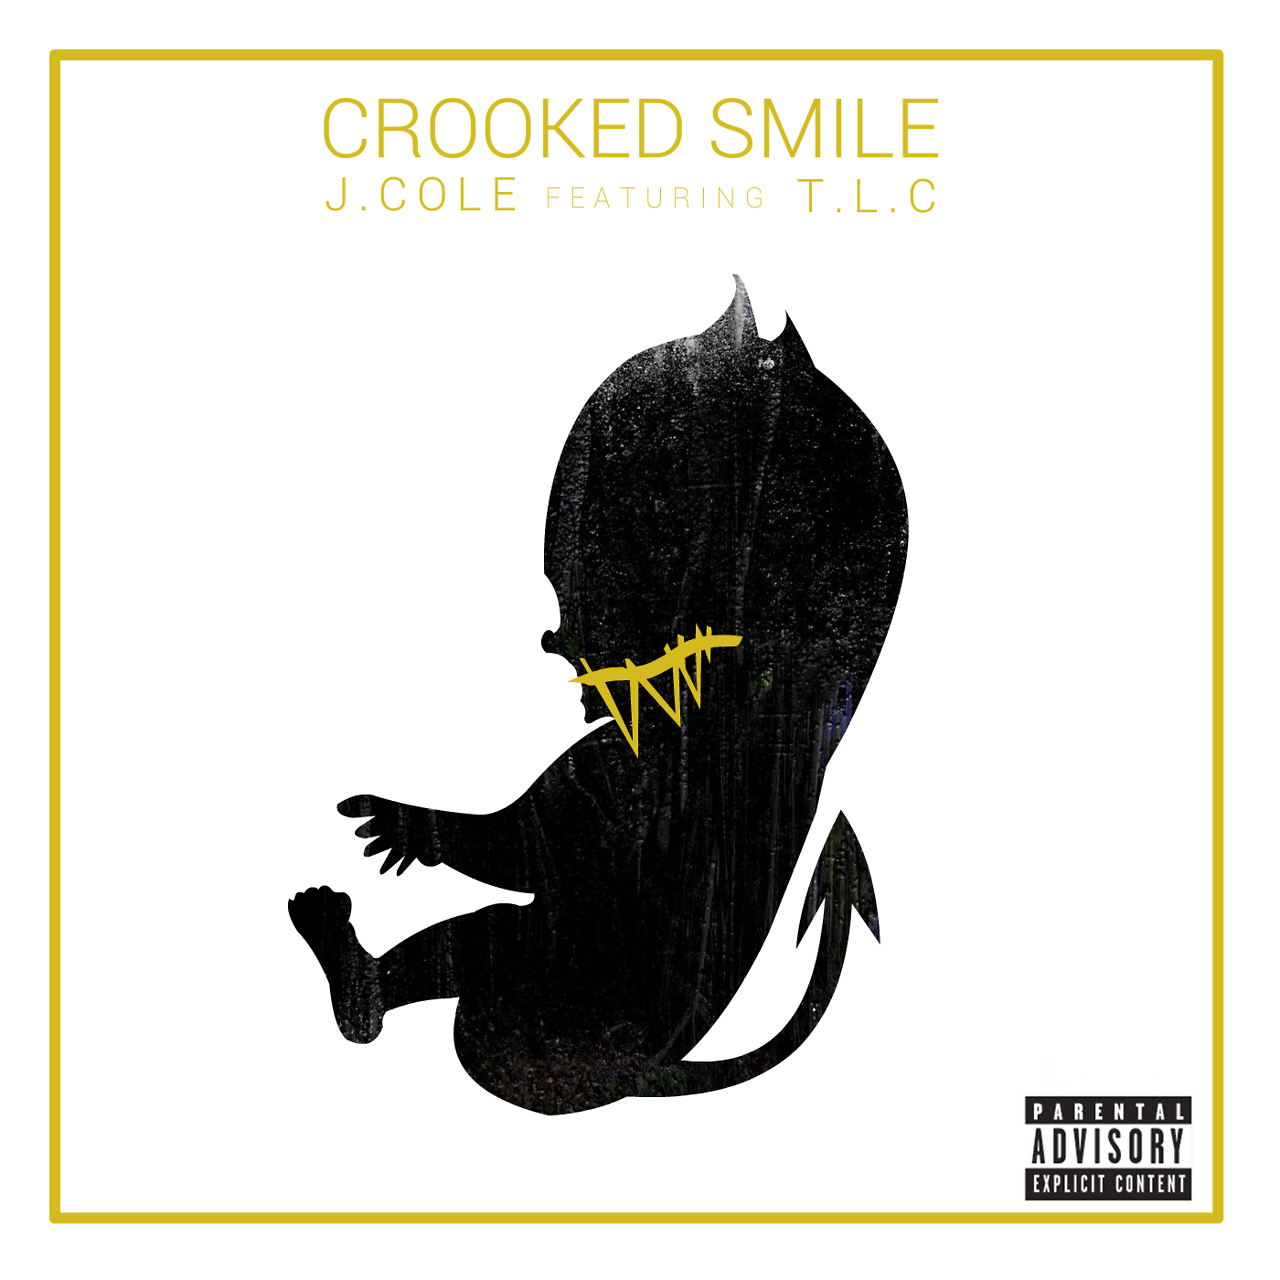 J Cole Crooked Smile Quotes Tumblr J Cole Crooked Smile Q...